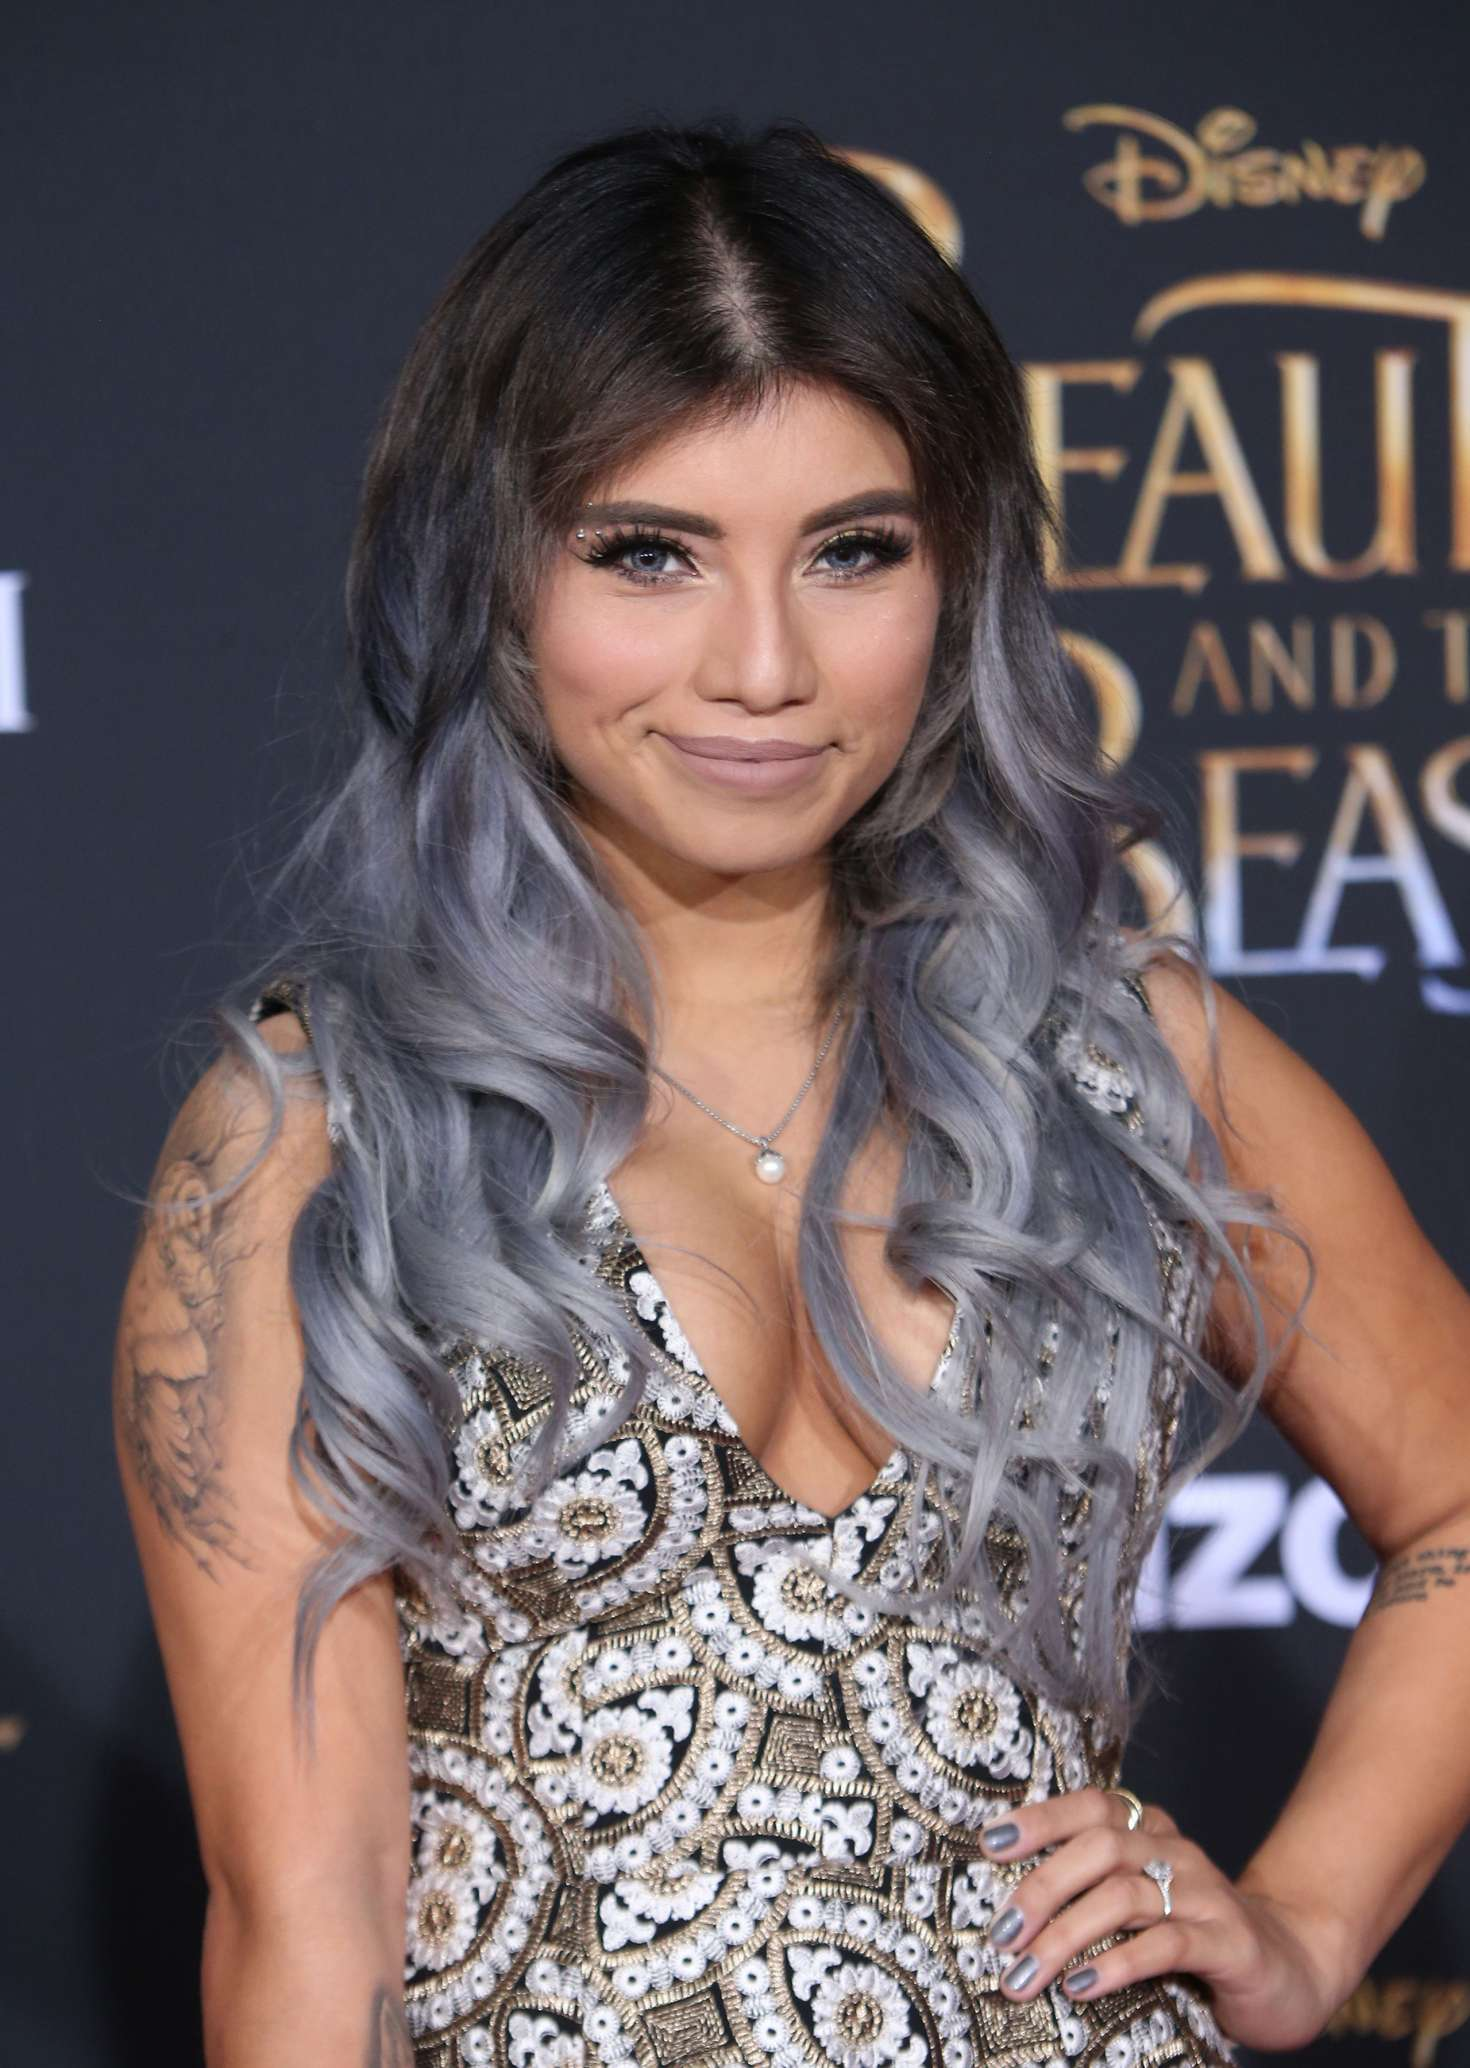 Kirstin Maldonado Beauty And The Beast Premiere In Los